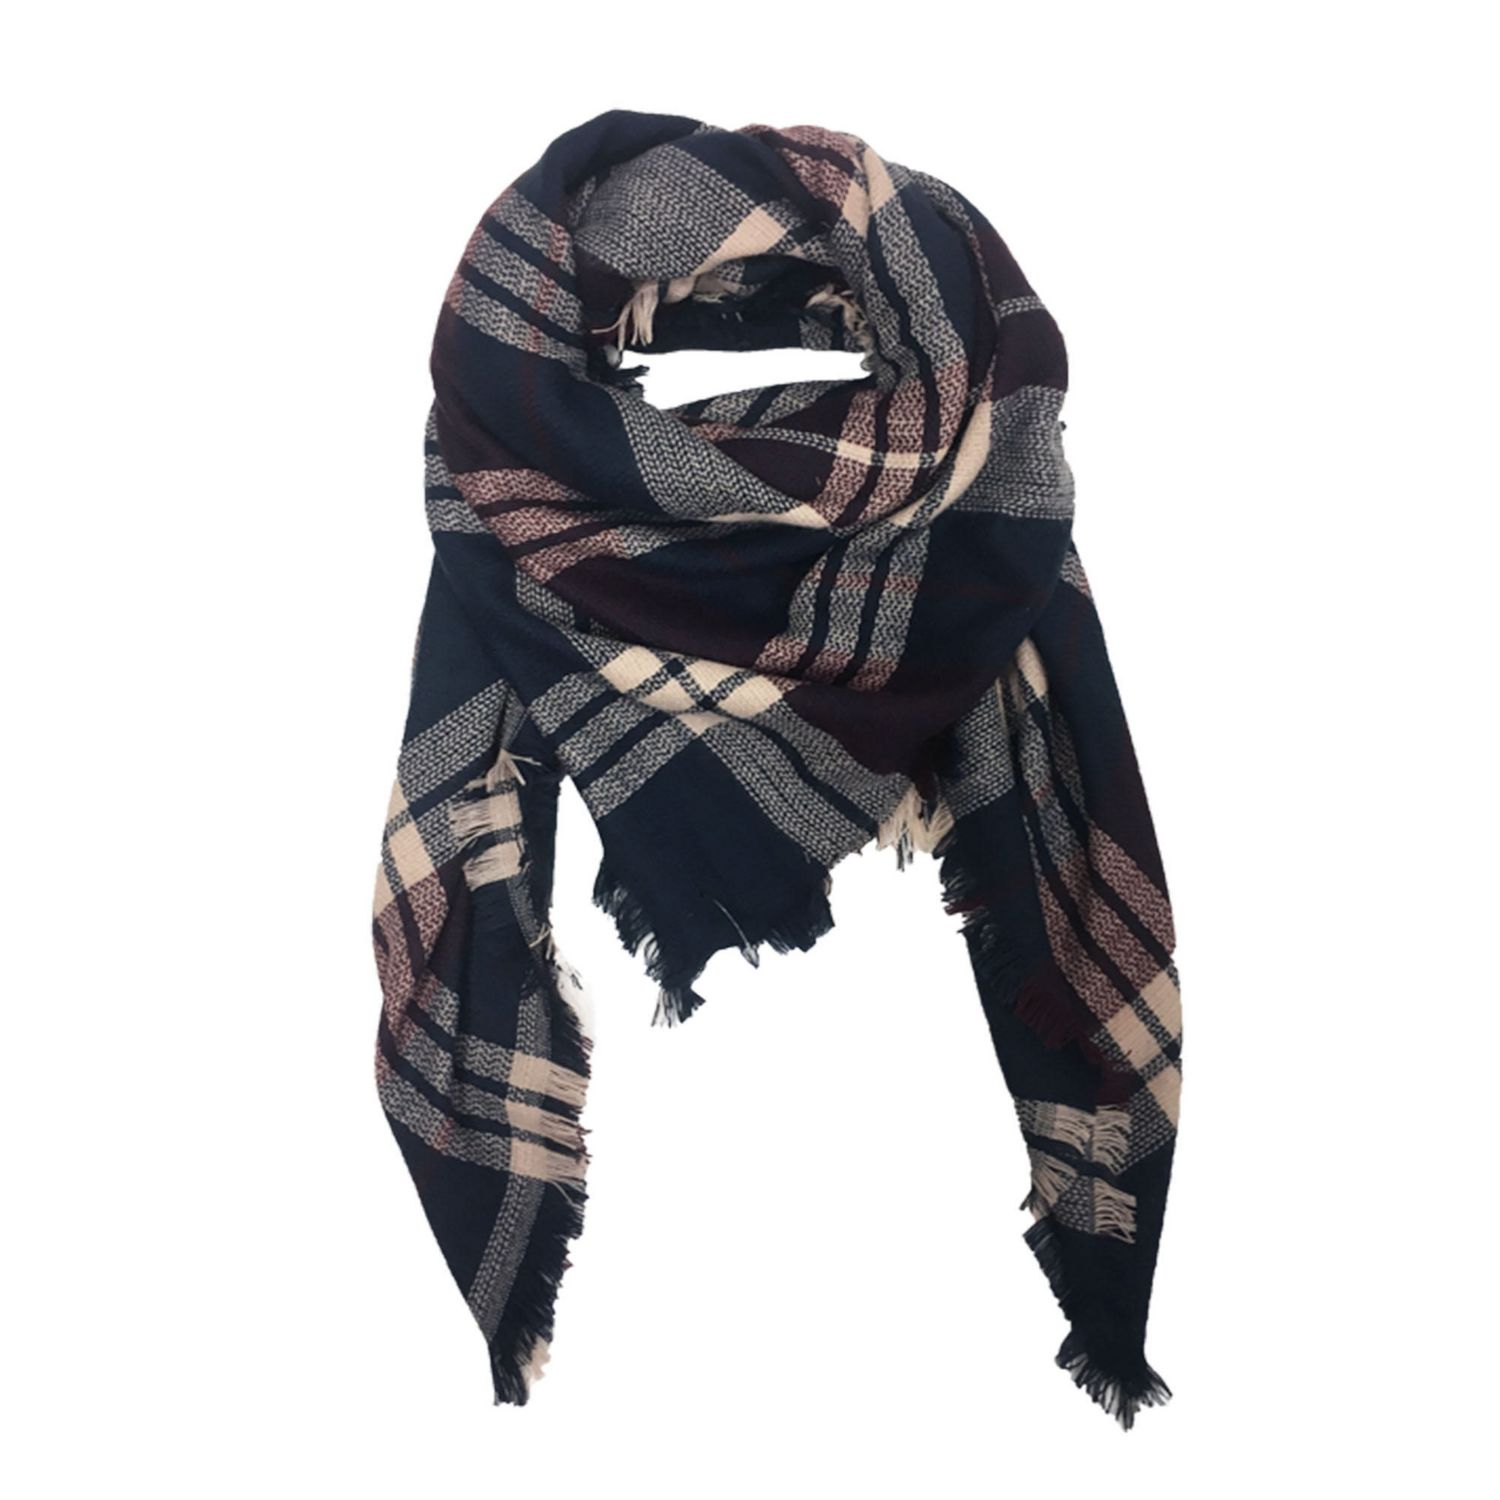 Square Blanket Scarf By George Walmart Canada